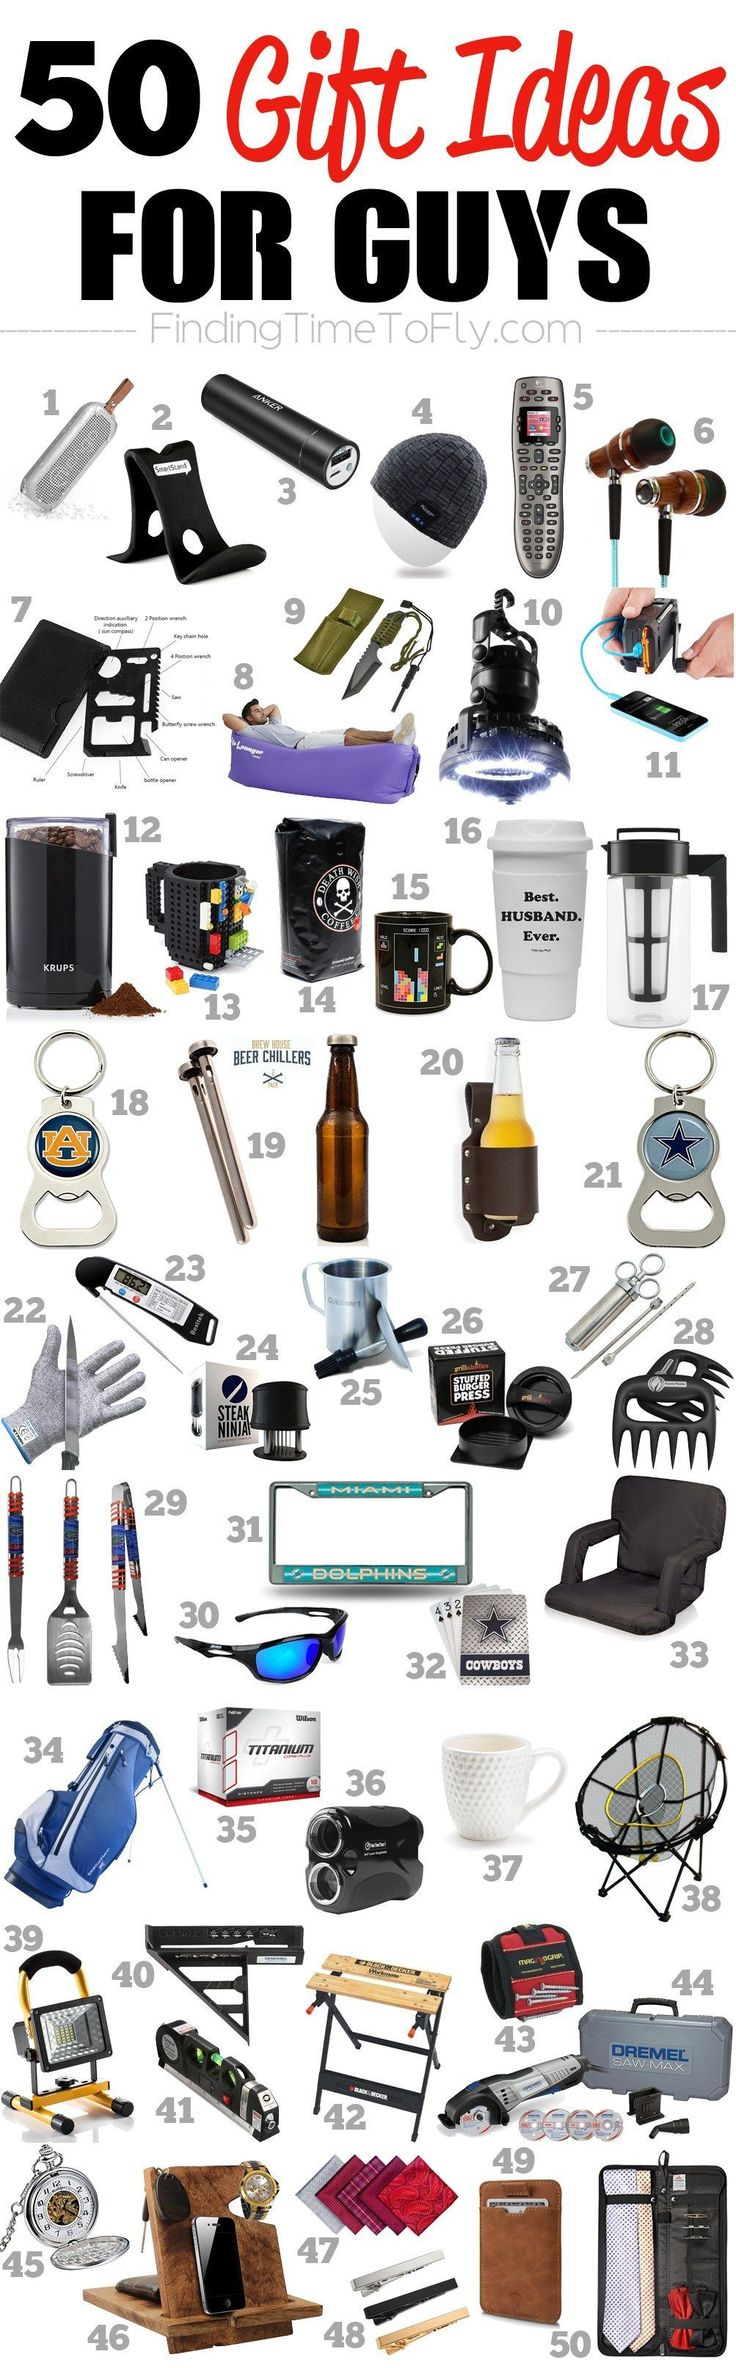 Saving This List Of 50 Gifts For Guys A Great Gift Ideas Men To Birthdays Valentine S Day Father Graduation Or Christmas